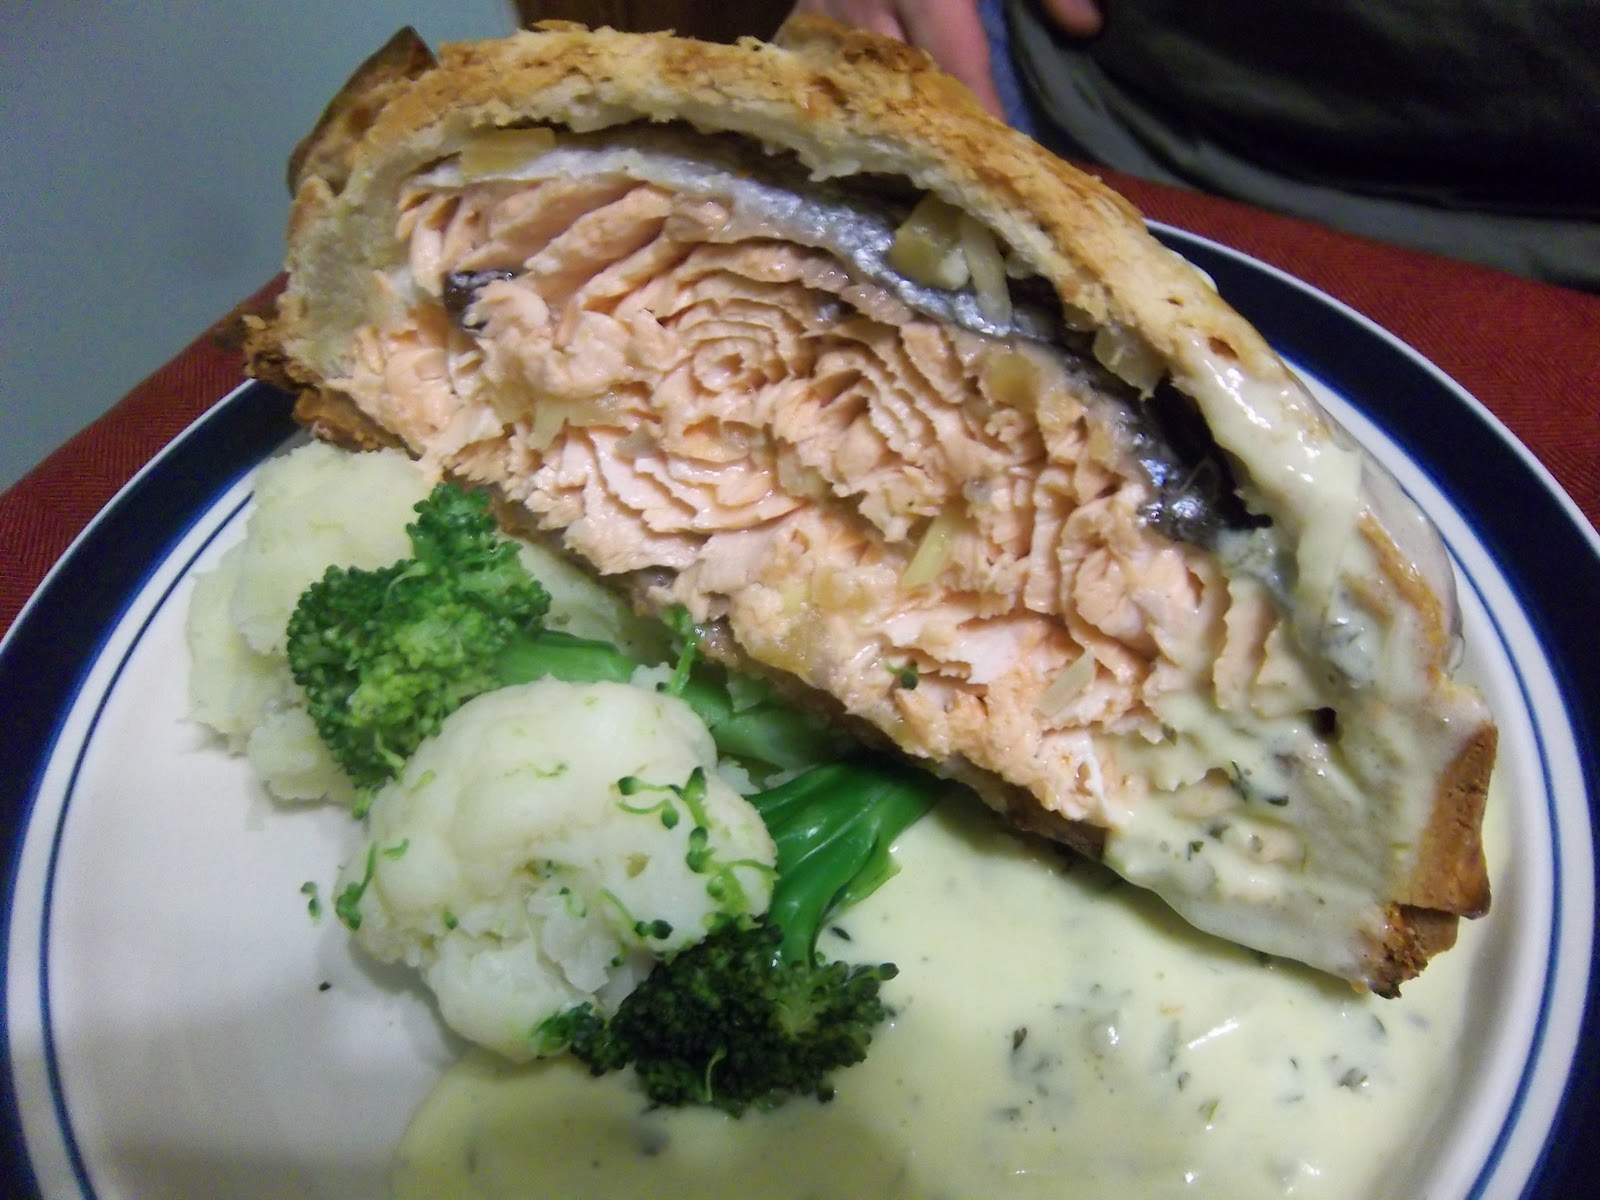 ... image of skate with green skate with green herb sauce green herb sauce